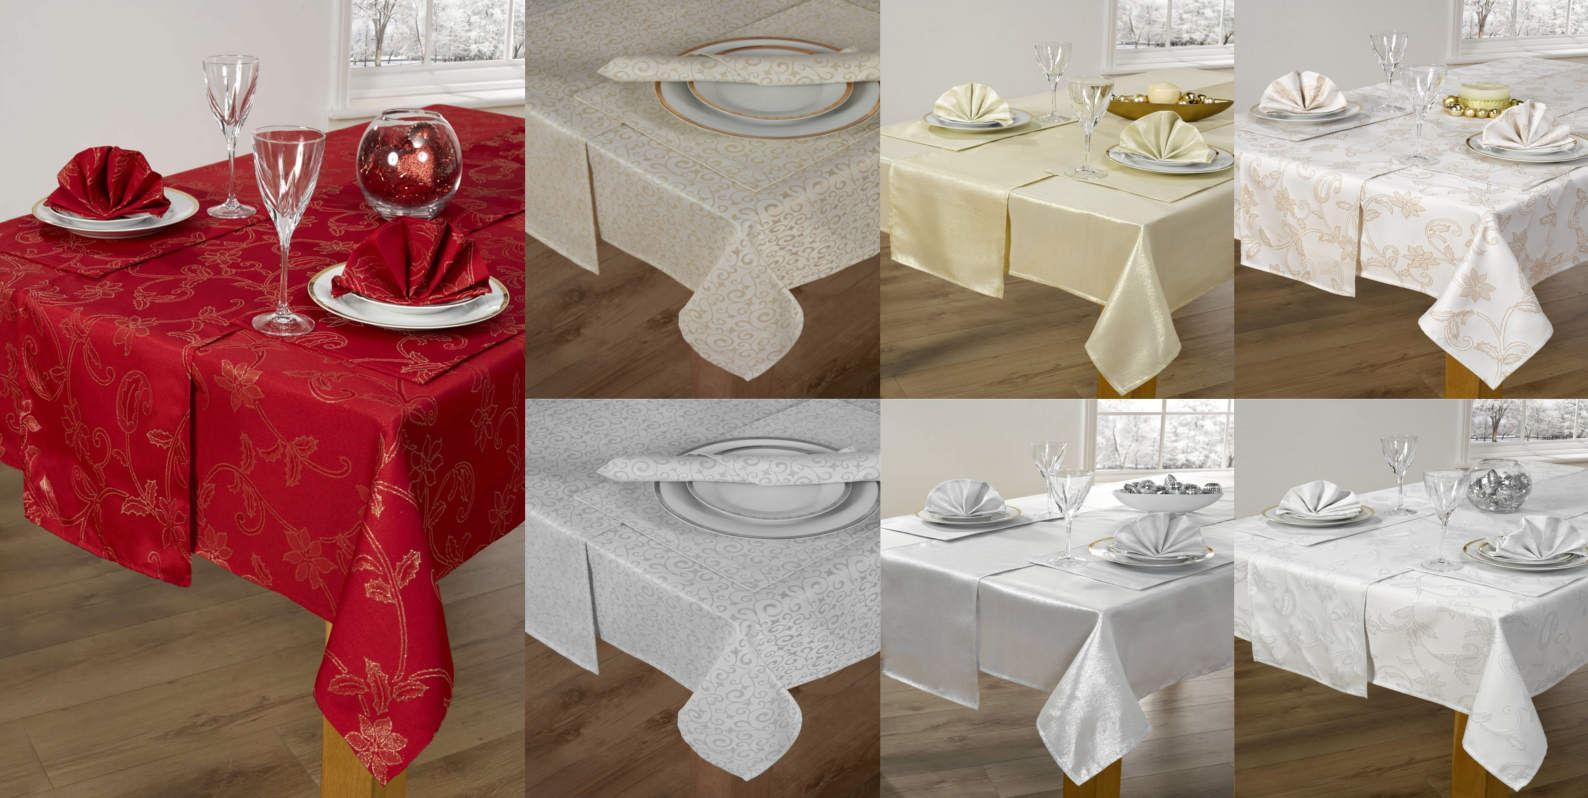 f171571394 14 Piece Christmas Table Linen Set Cloth Napkins Runner Placemats 52 ...